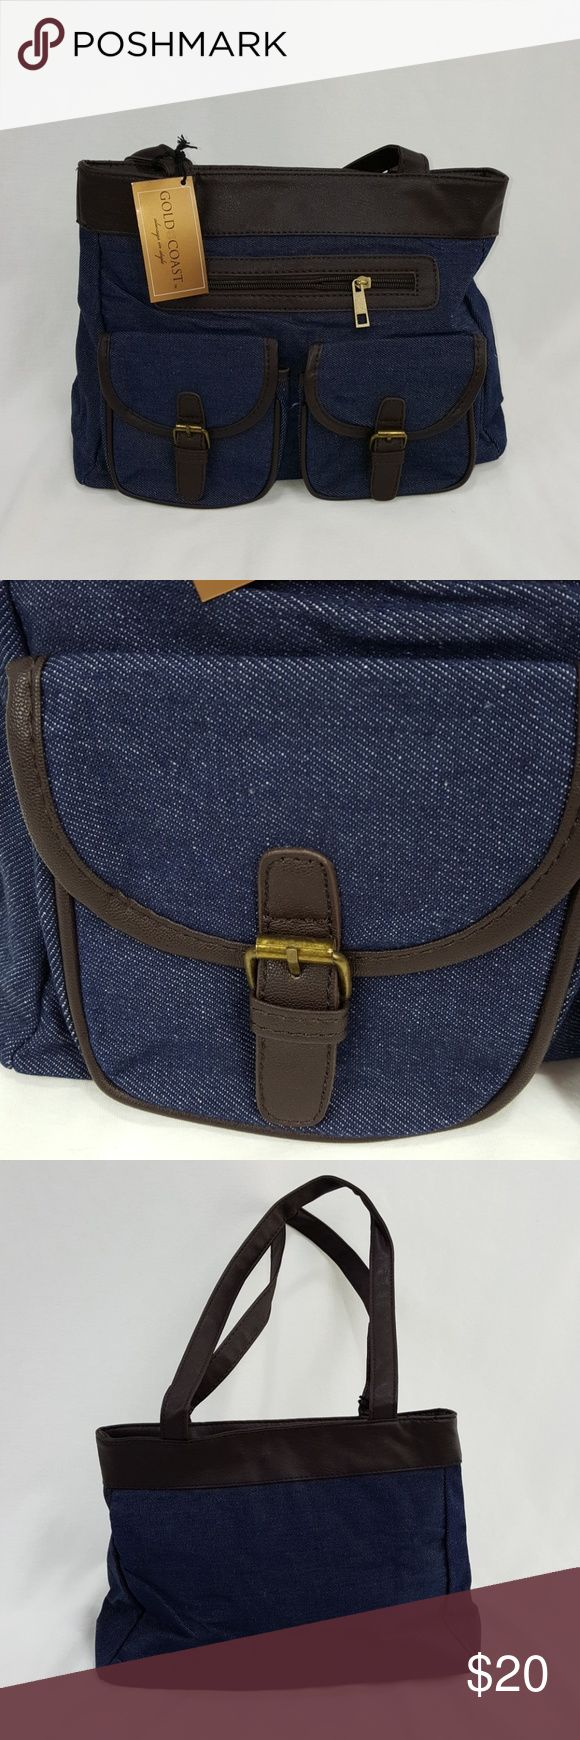 """Jean purse Gold coast jean purse. About 14"""" wide and 10"""" tall. gold coast Bags"""